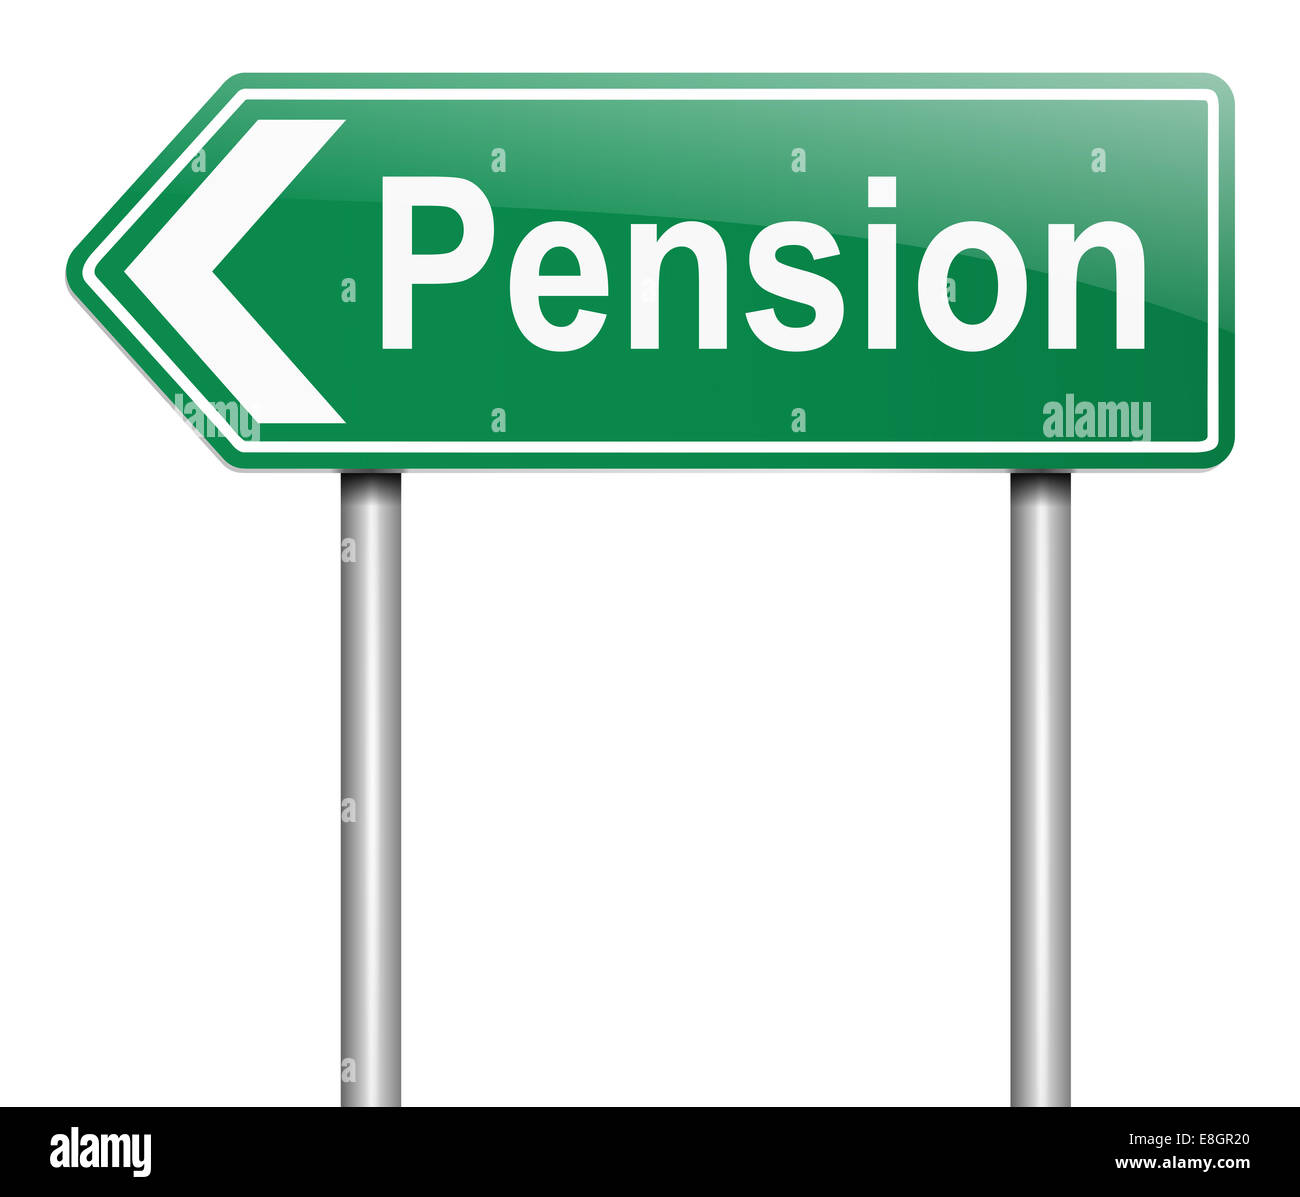 Pension-Konzept. Stockbild